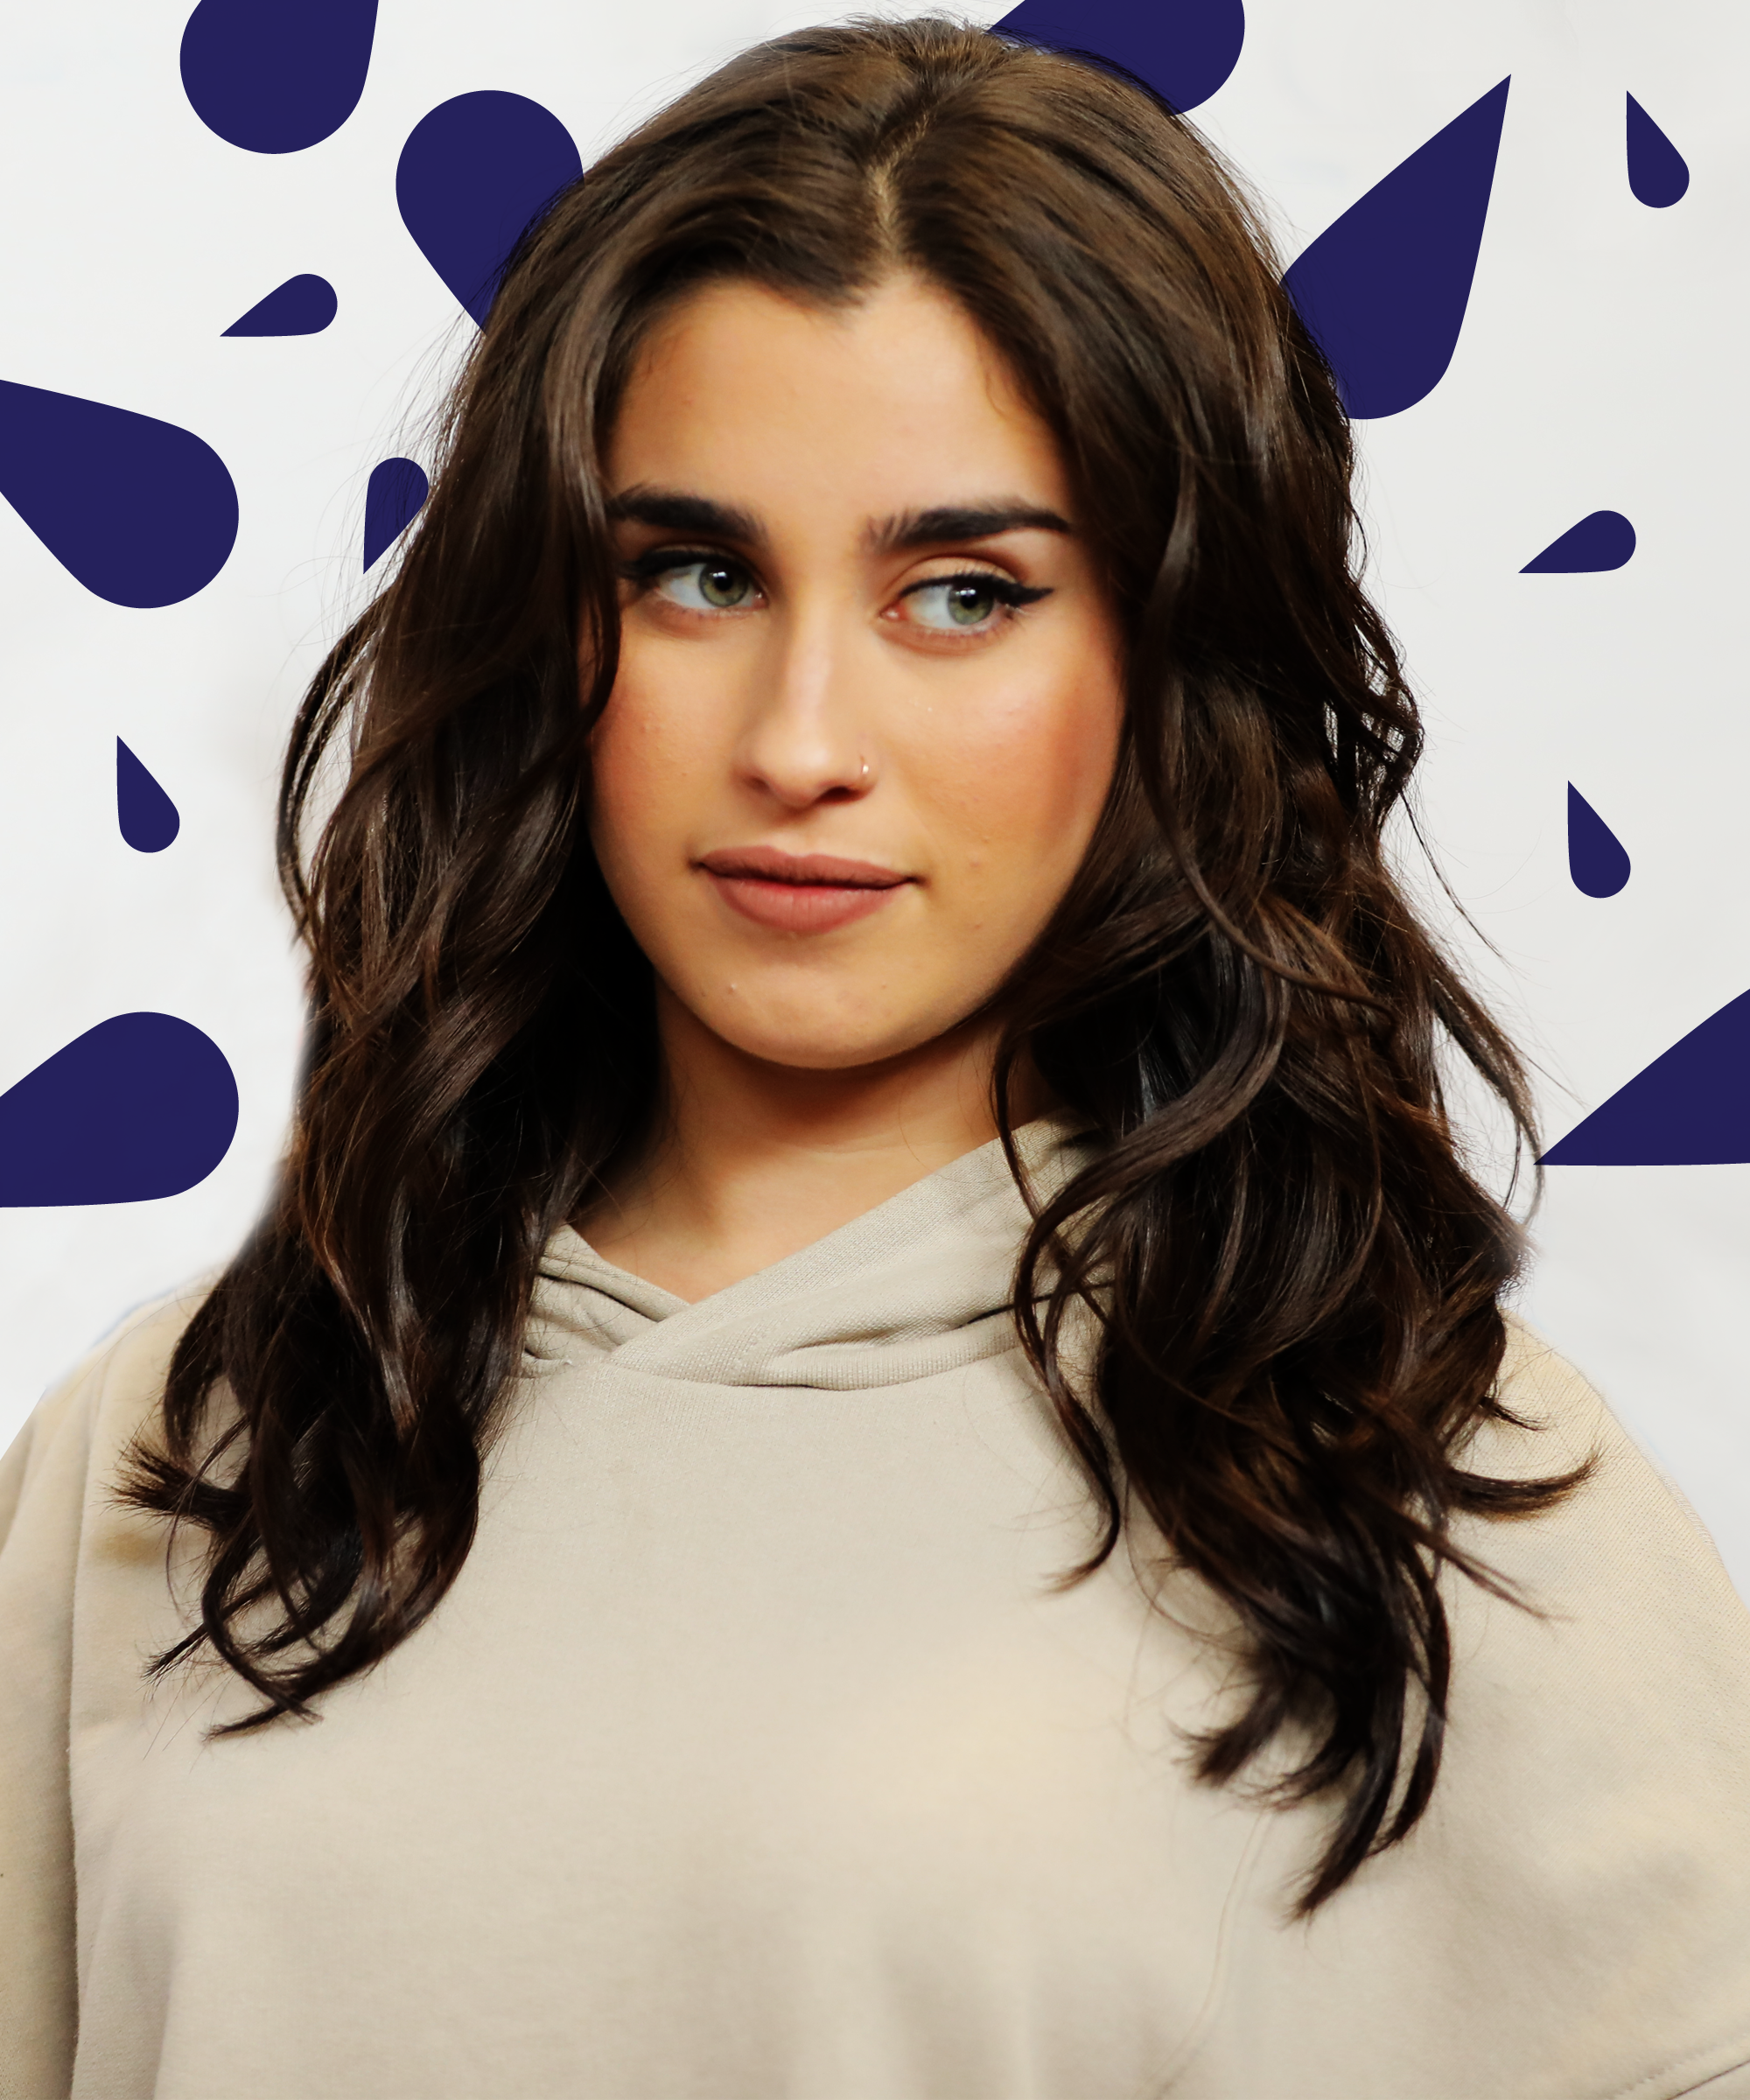 Lauren Jauregui Dating Camila Cabello Rumors Bisexual